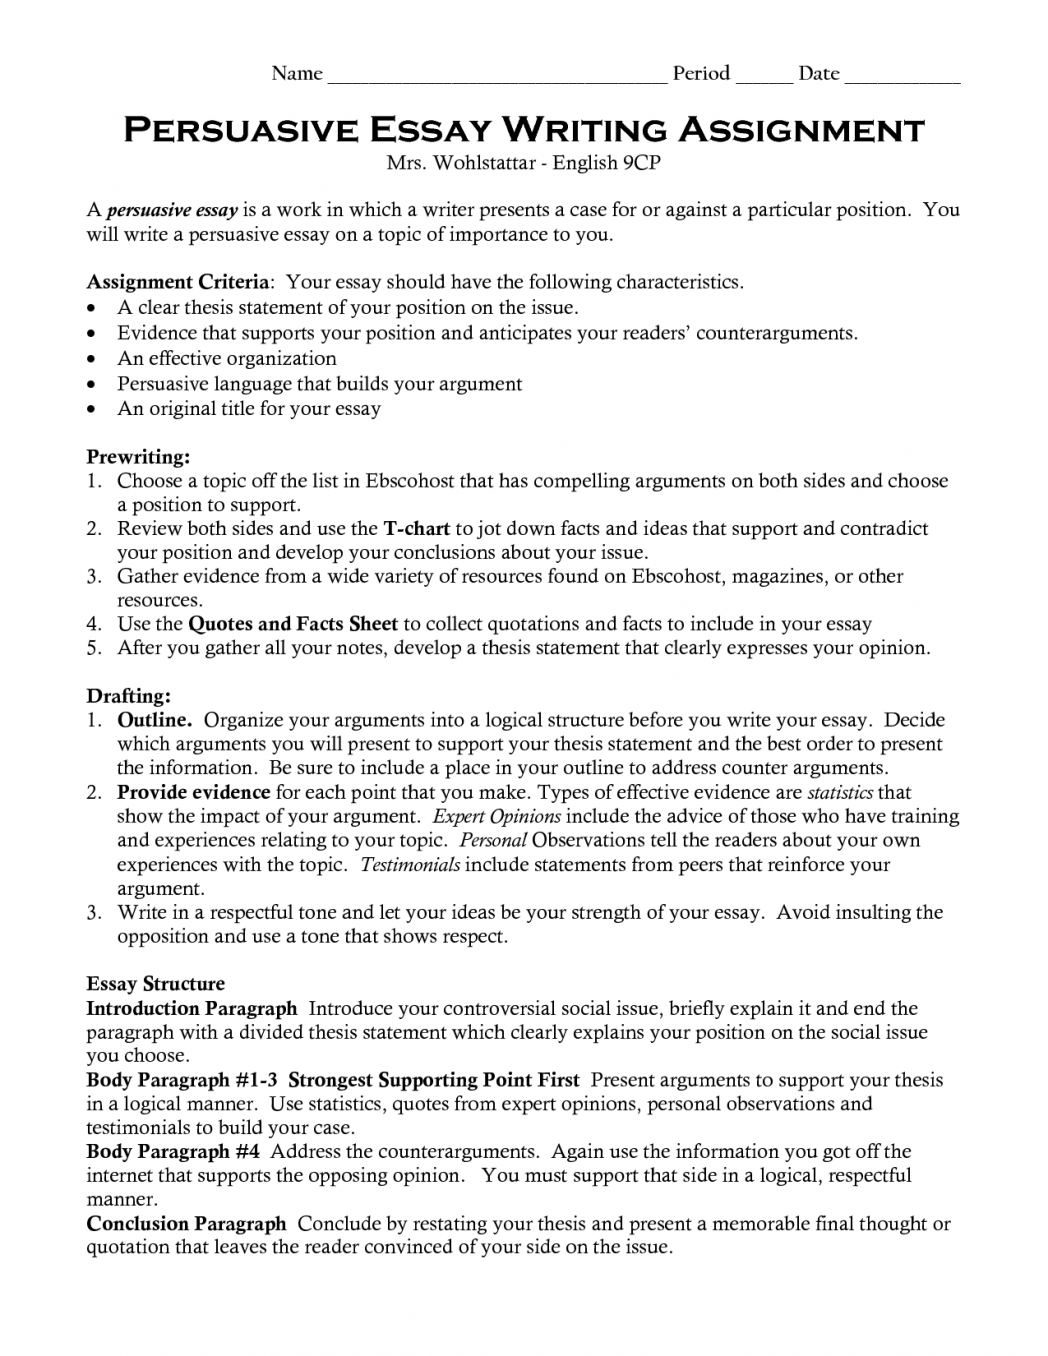 004 Persuasive Essay Thesismples Statement Of Topics For On Bullying Template V0c Introduction Paragraph Outline Hook In High School Conclusions 1048x1356 Fascinating Thesis Examples And Gathering Resources Worksheet Speech Sample Full